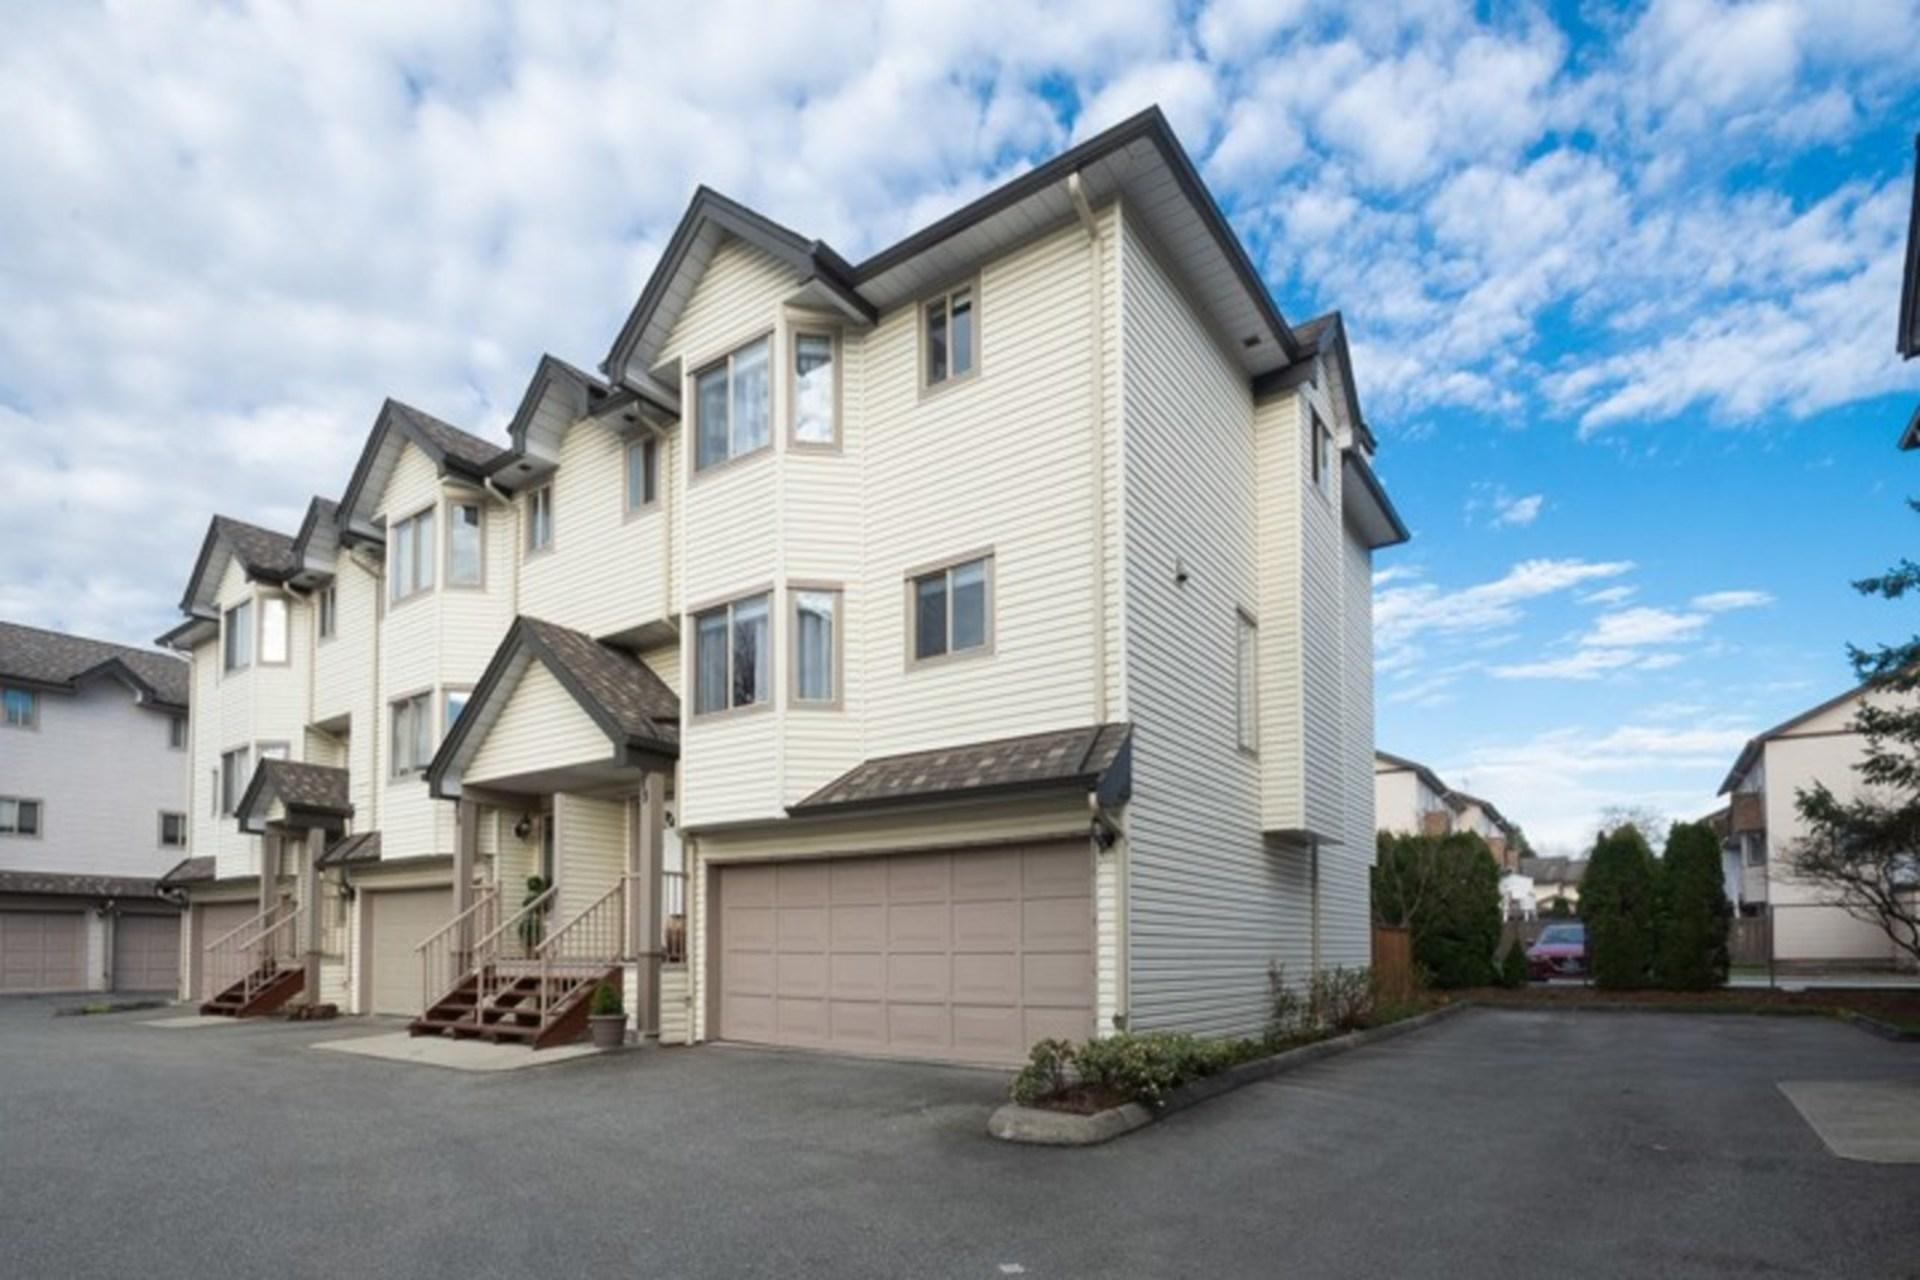 19 - 2420 Pitt River Road, Mary Hill, Port Coquitlam